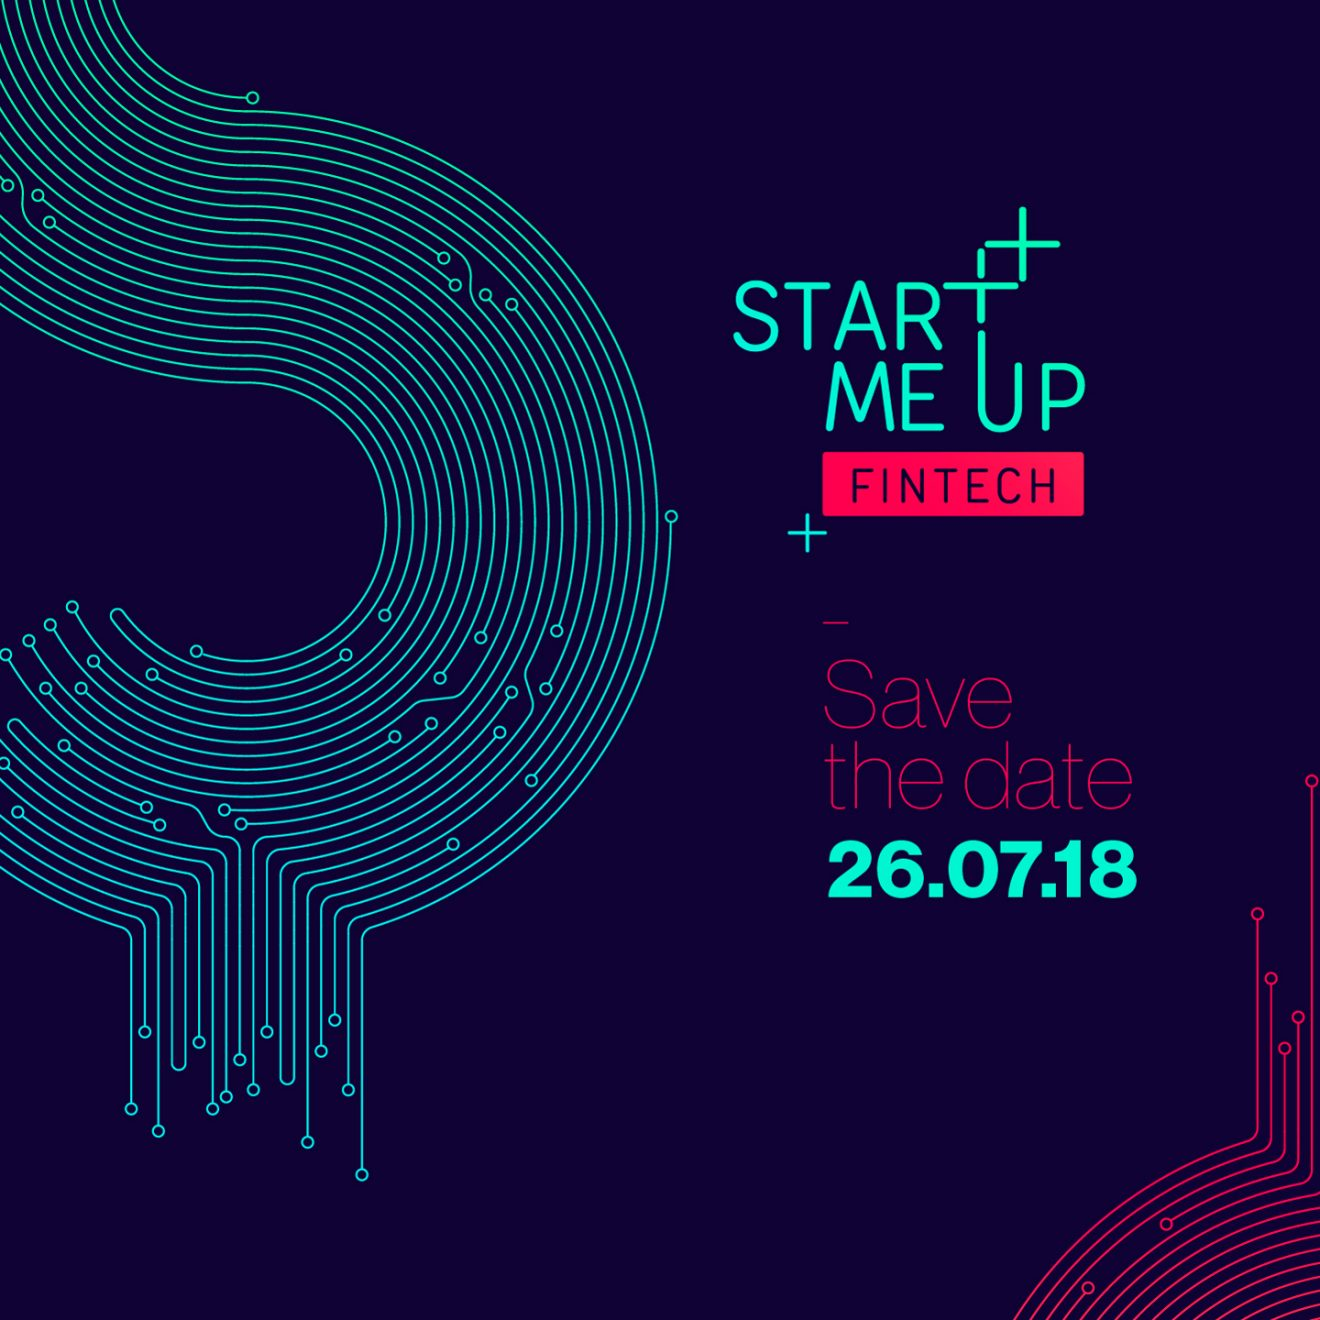 01. Save the date - SMU Fintech